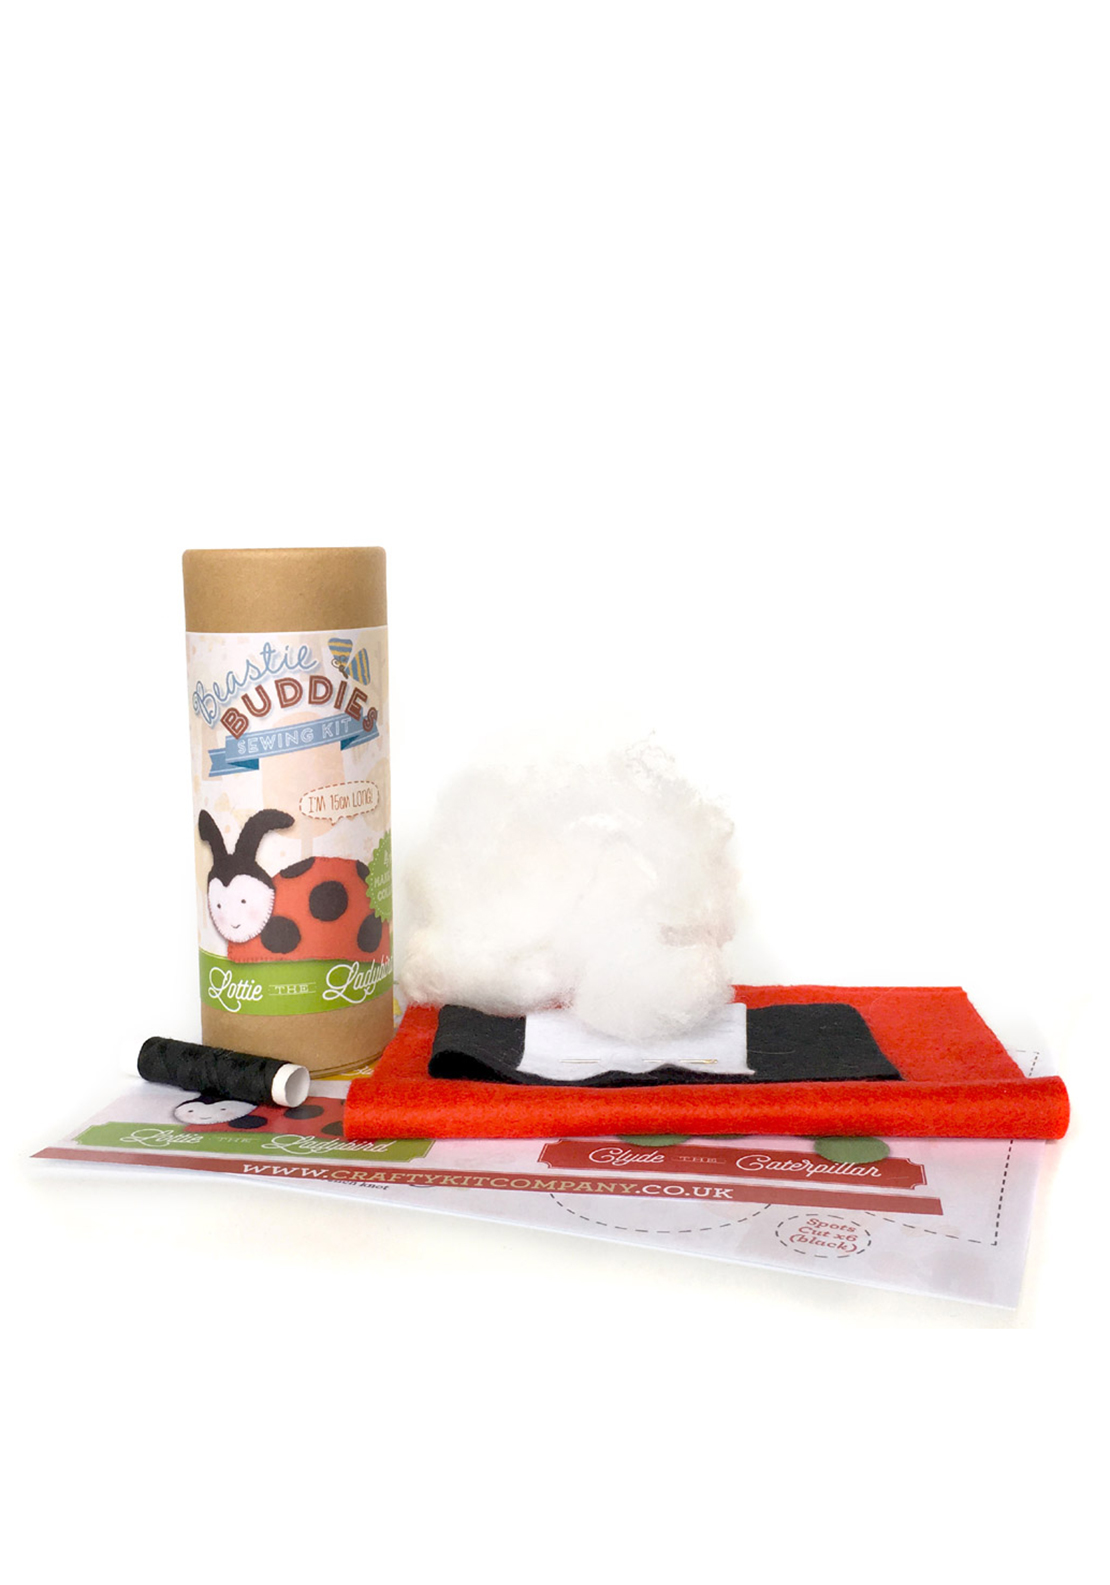 The Crafty Kit Co. Lottie the Ladybird Sewing Kit